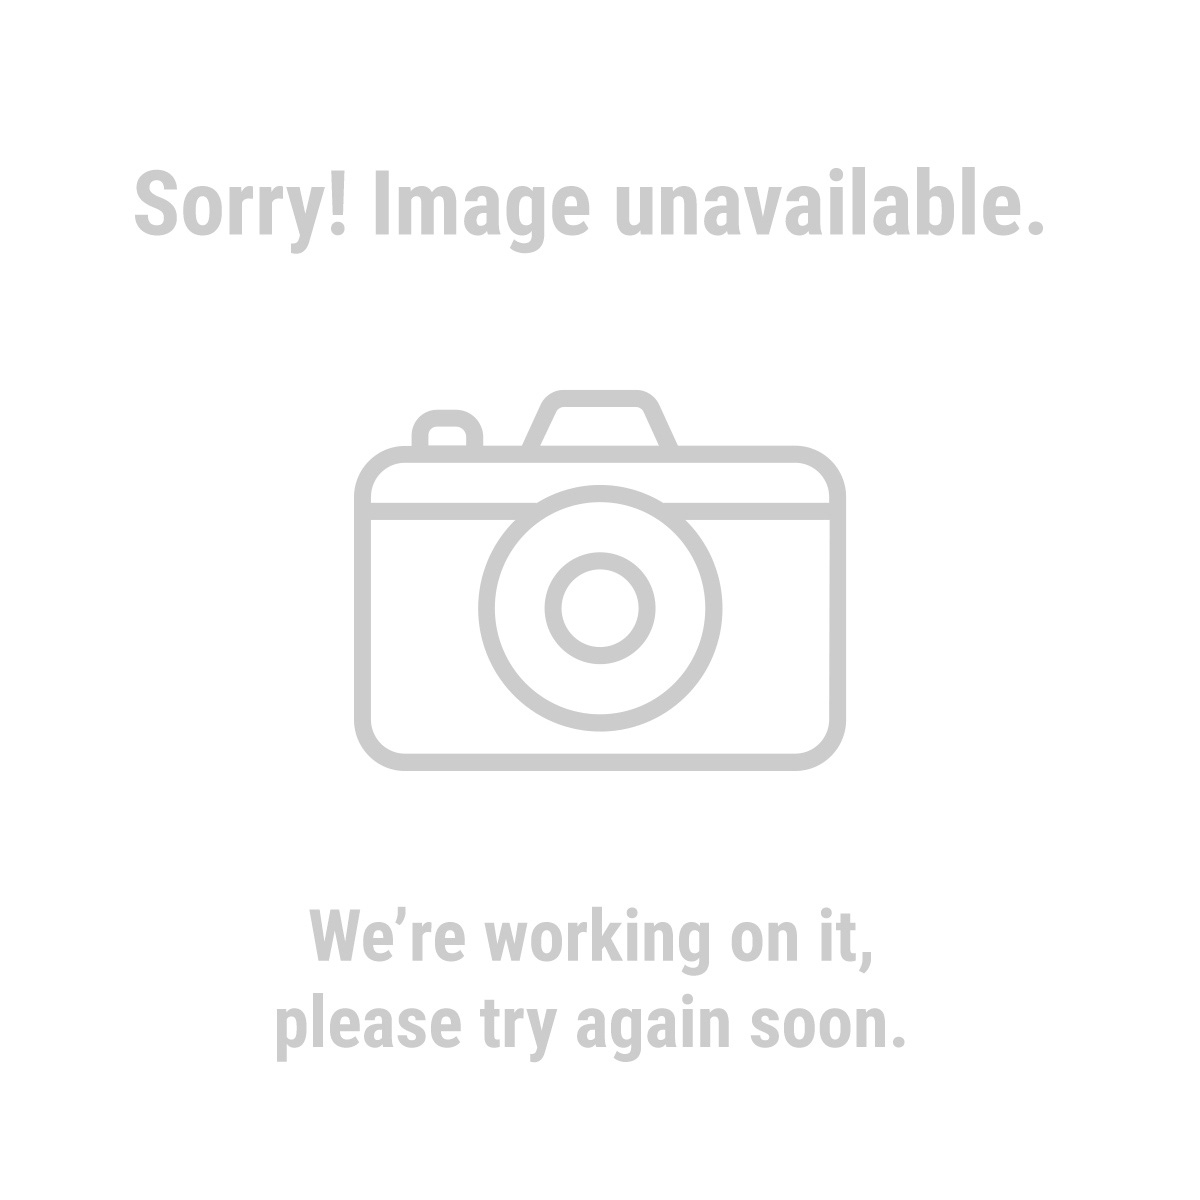 Haul-Master 93341 Trailer Spare Tire Carrier